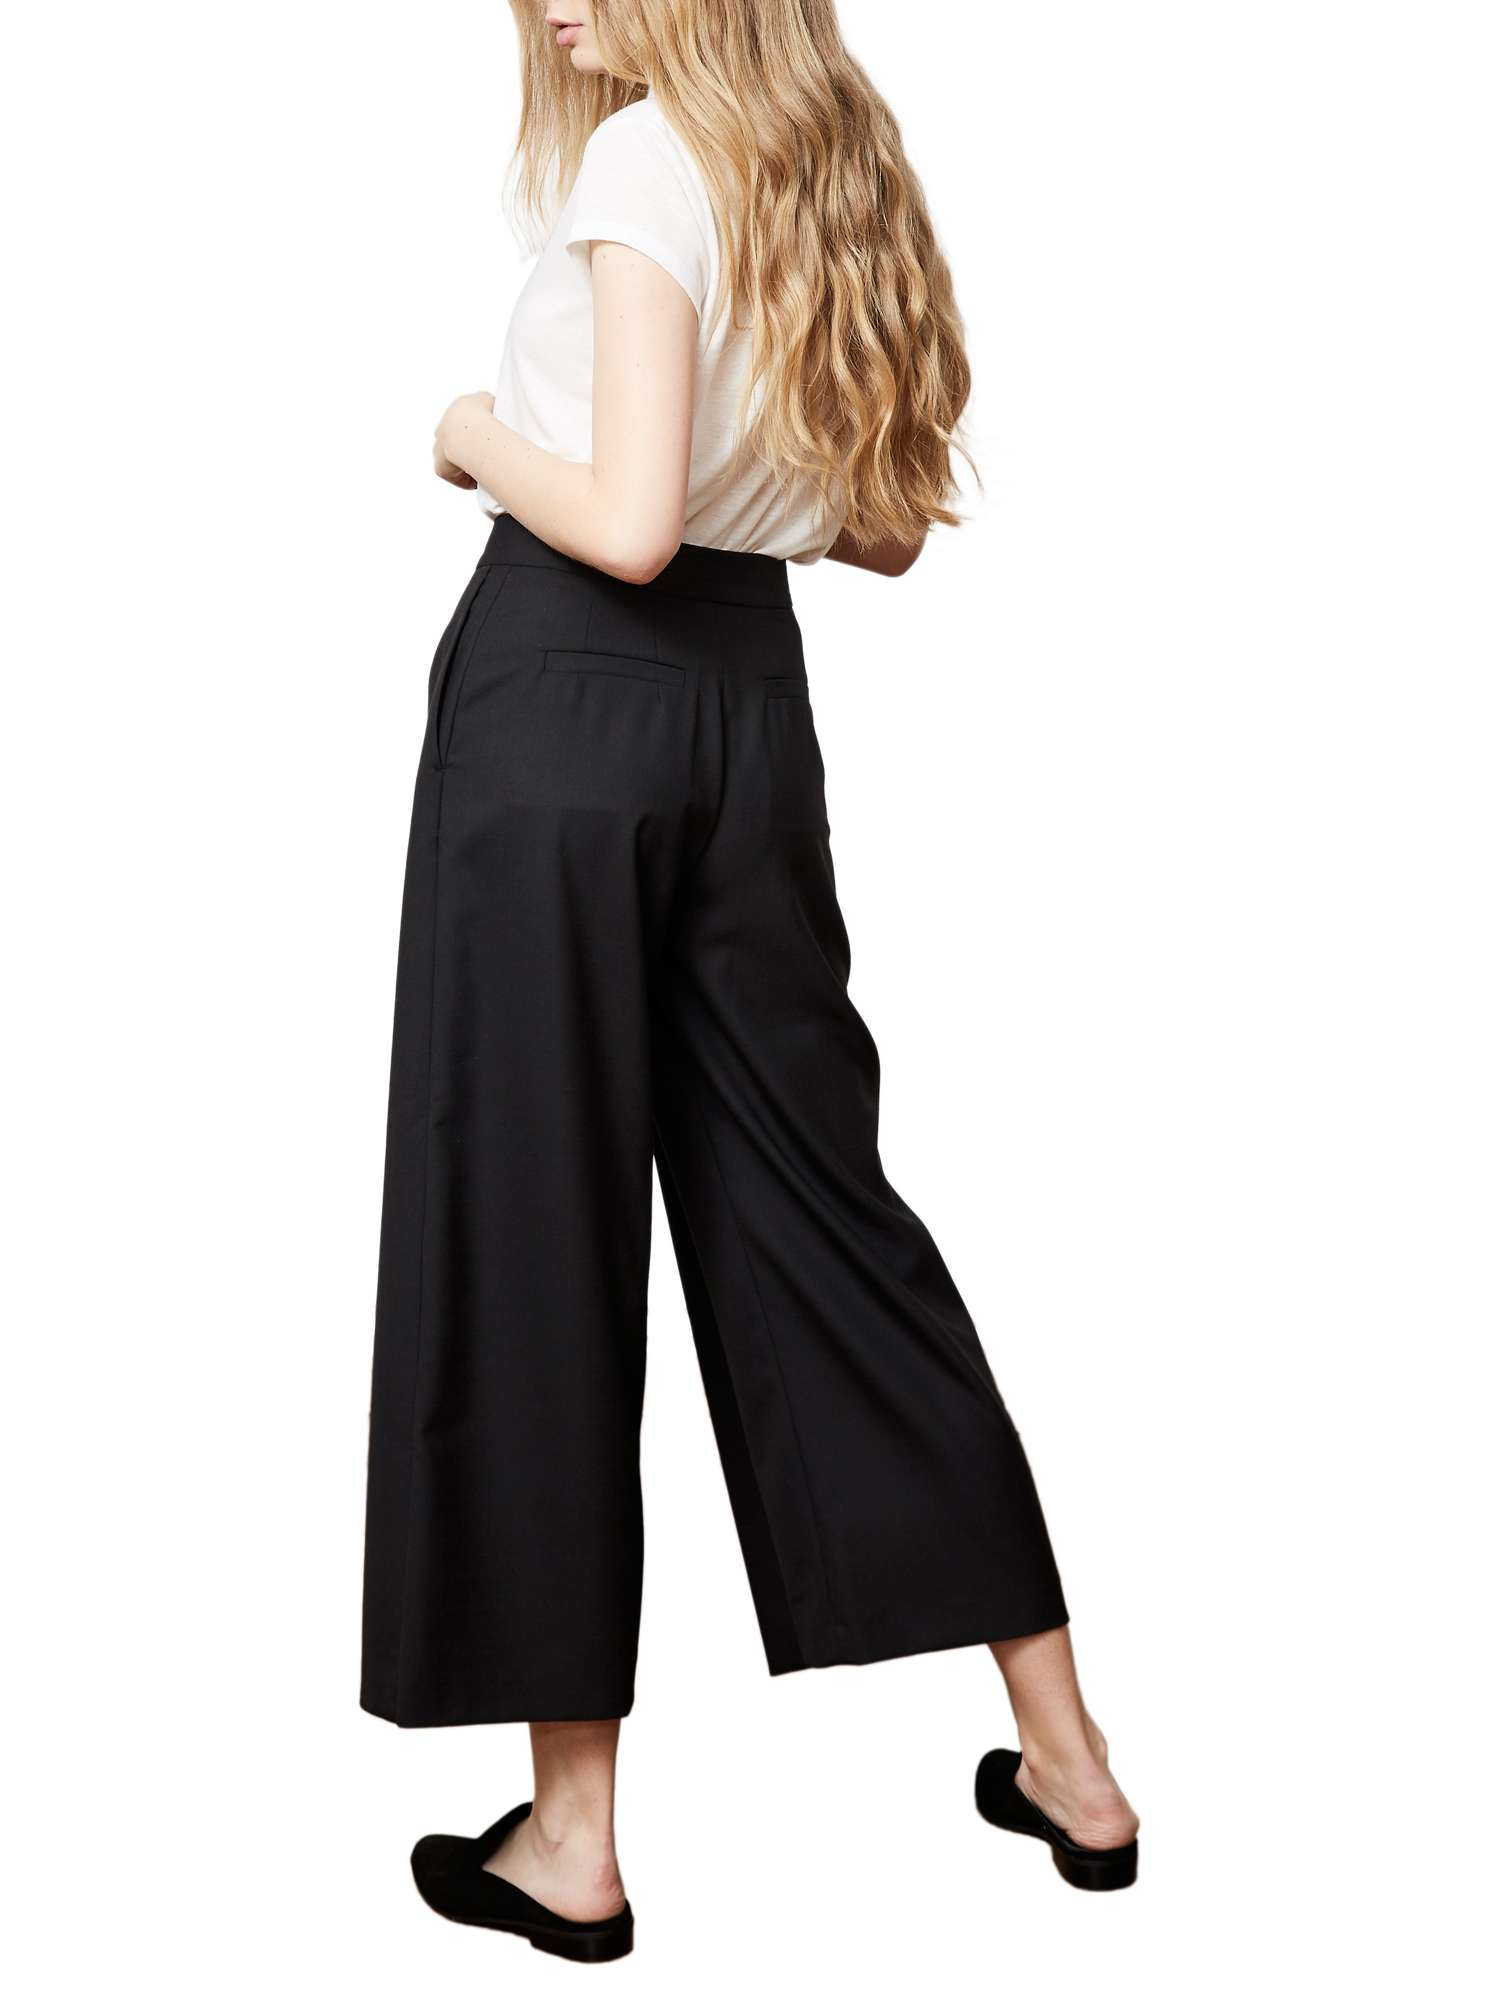 Culottes Culottes Connection French French Connection Connection Tallulah Tallulah French Culottes Tallulah Connection Tallulah Culottes French q8nfXA